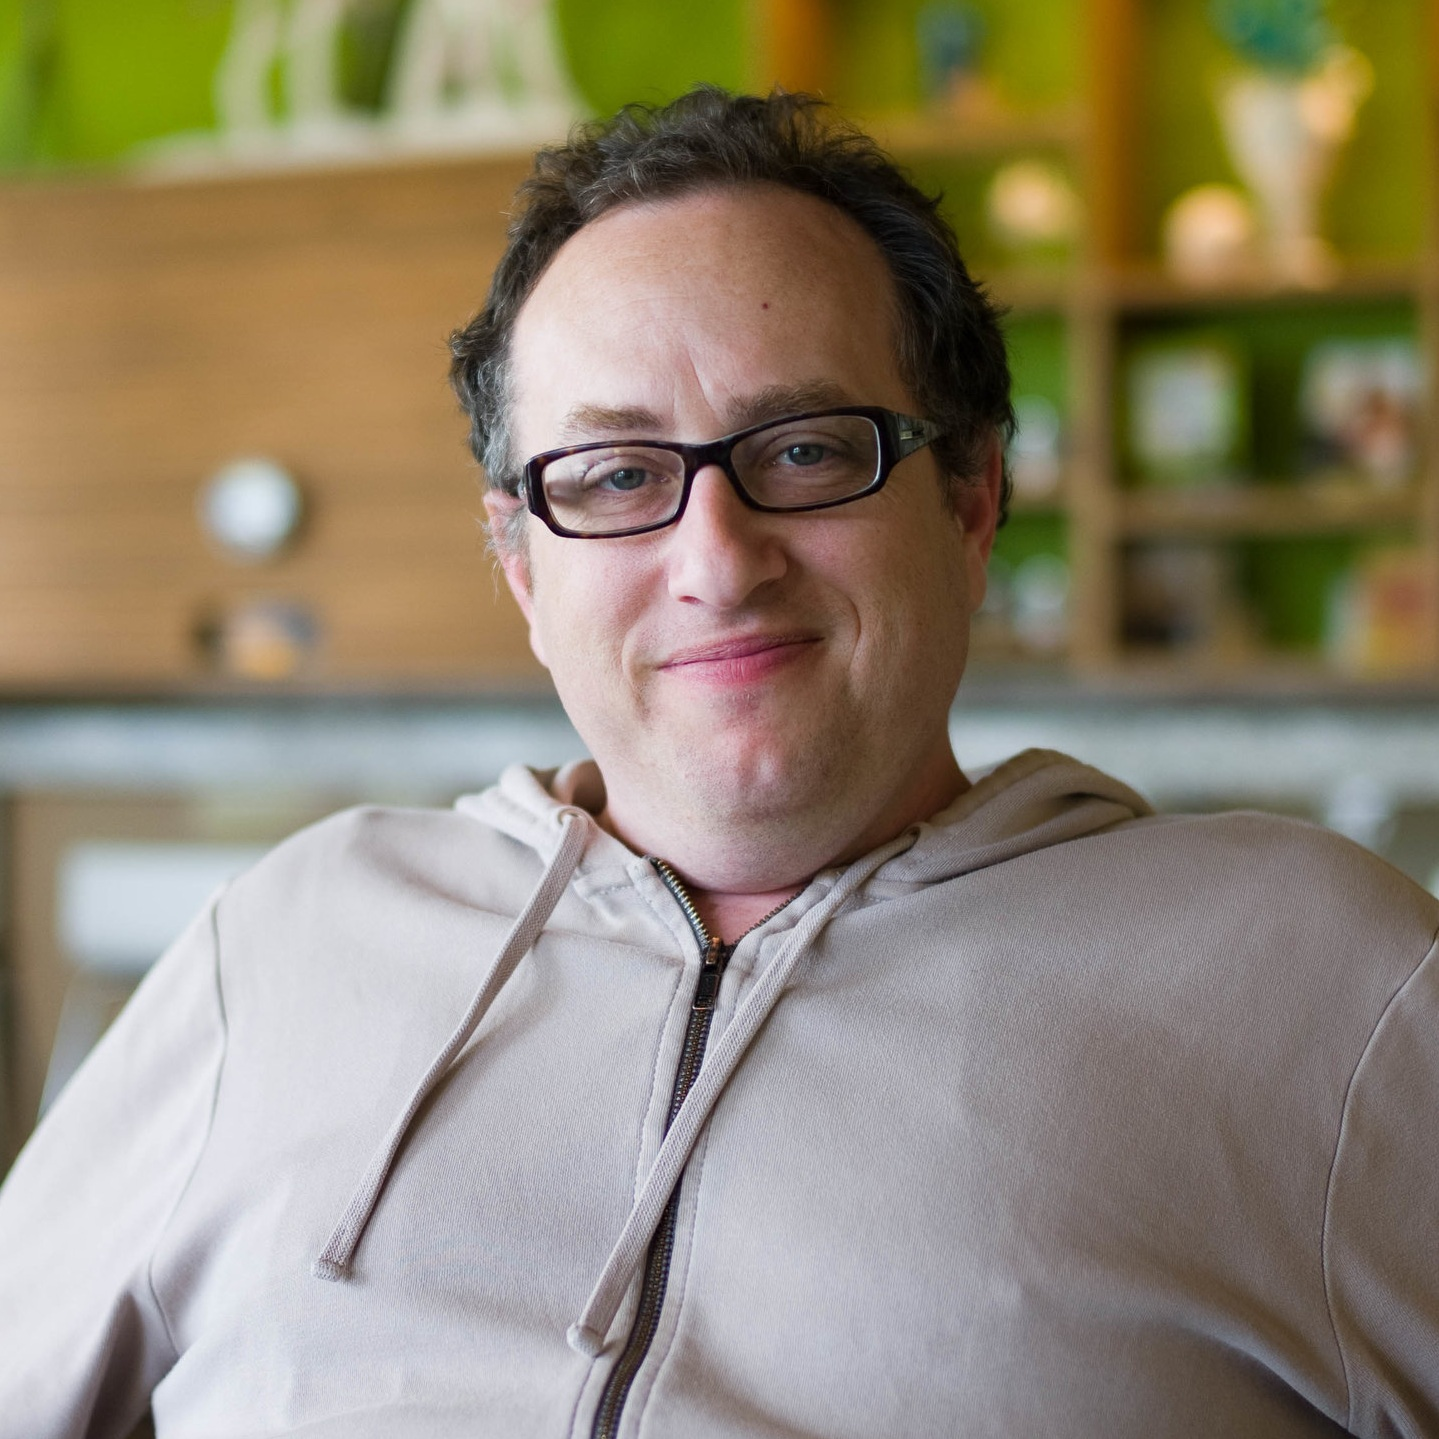 Jesse Dylan - Founder, creative director, and CEO, Wondros